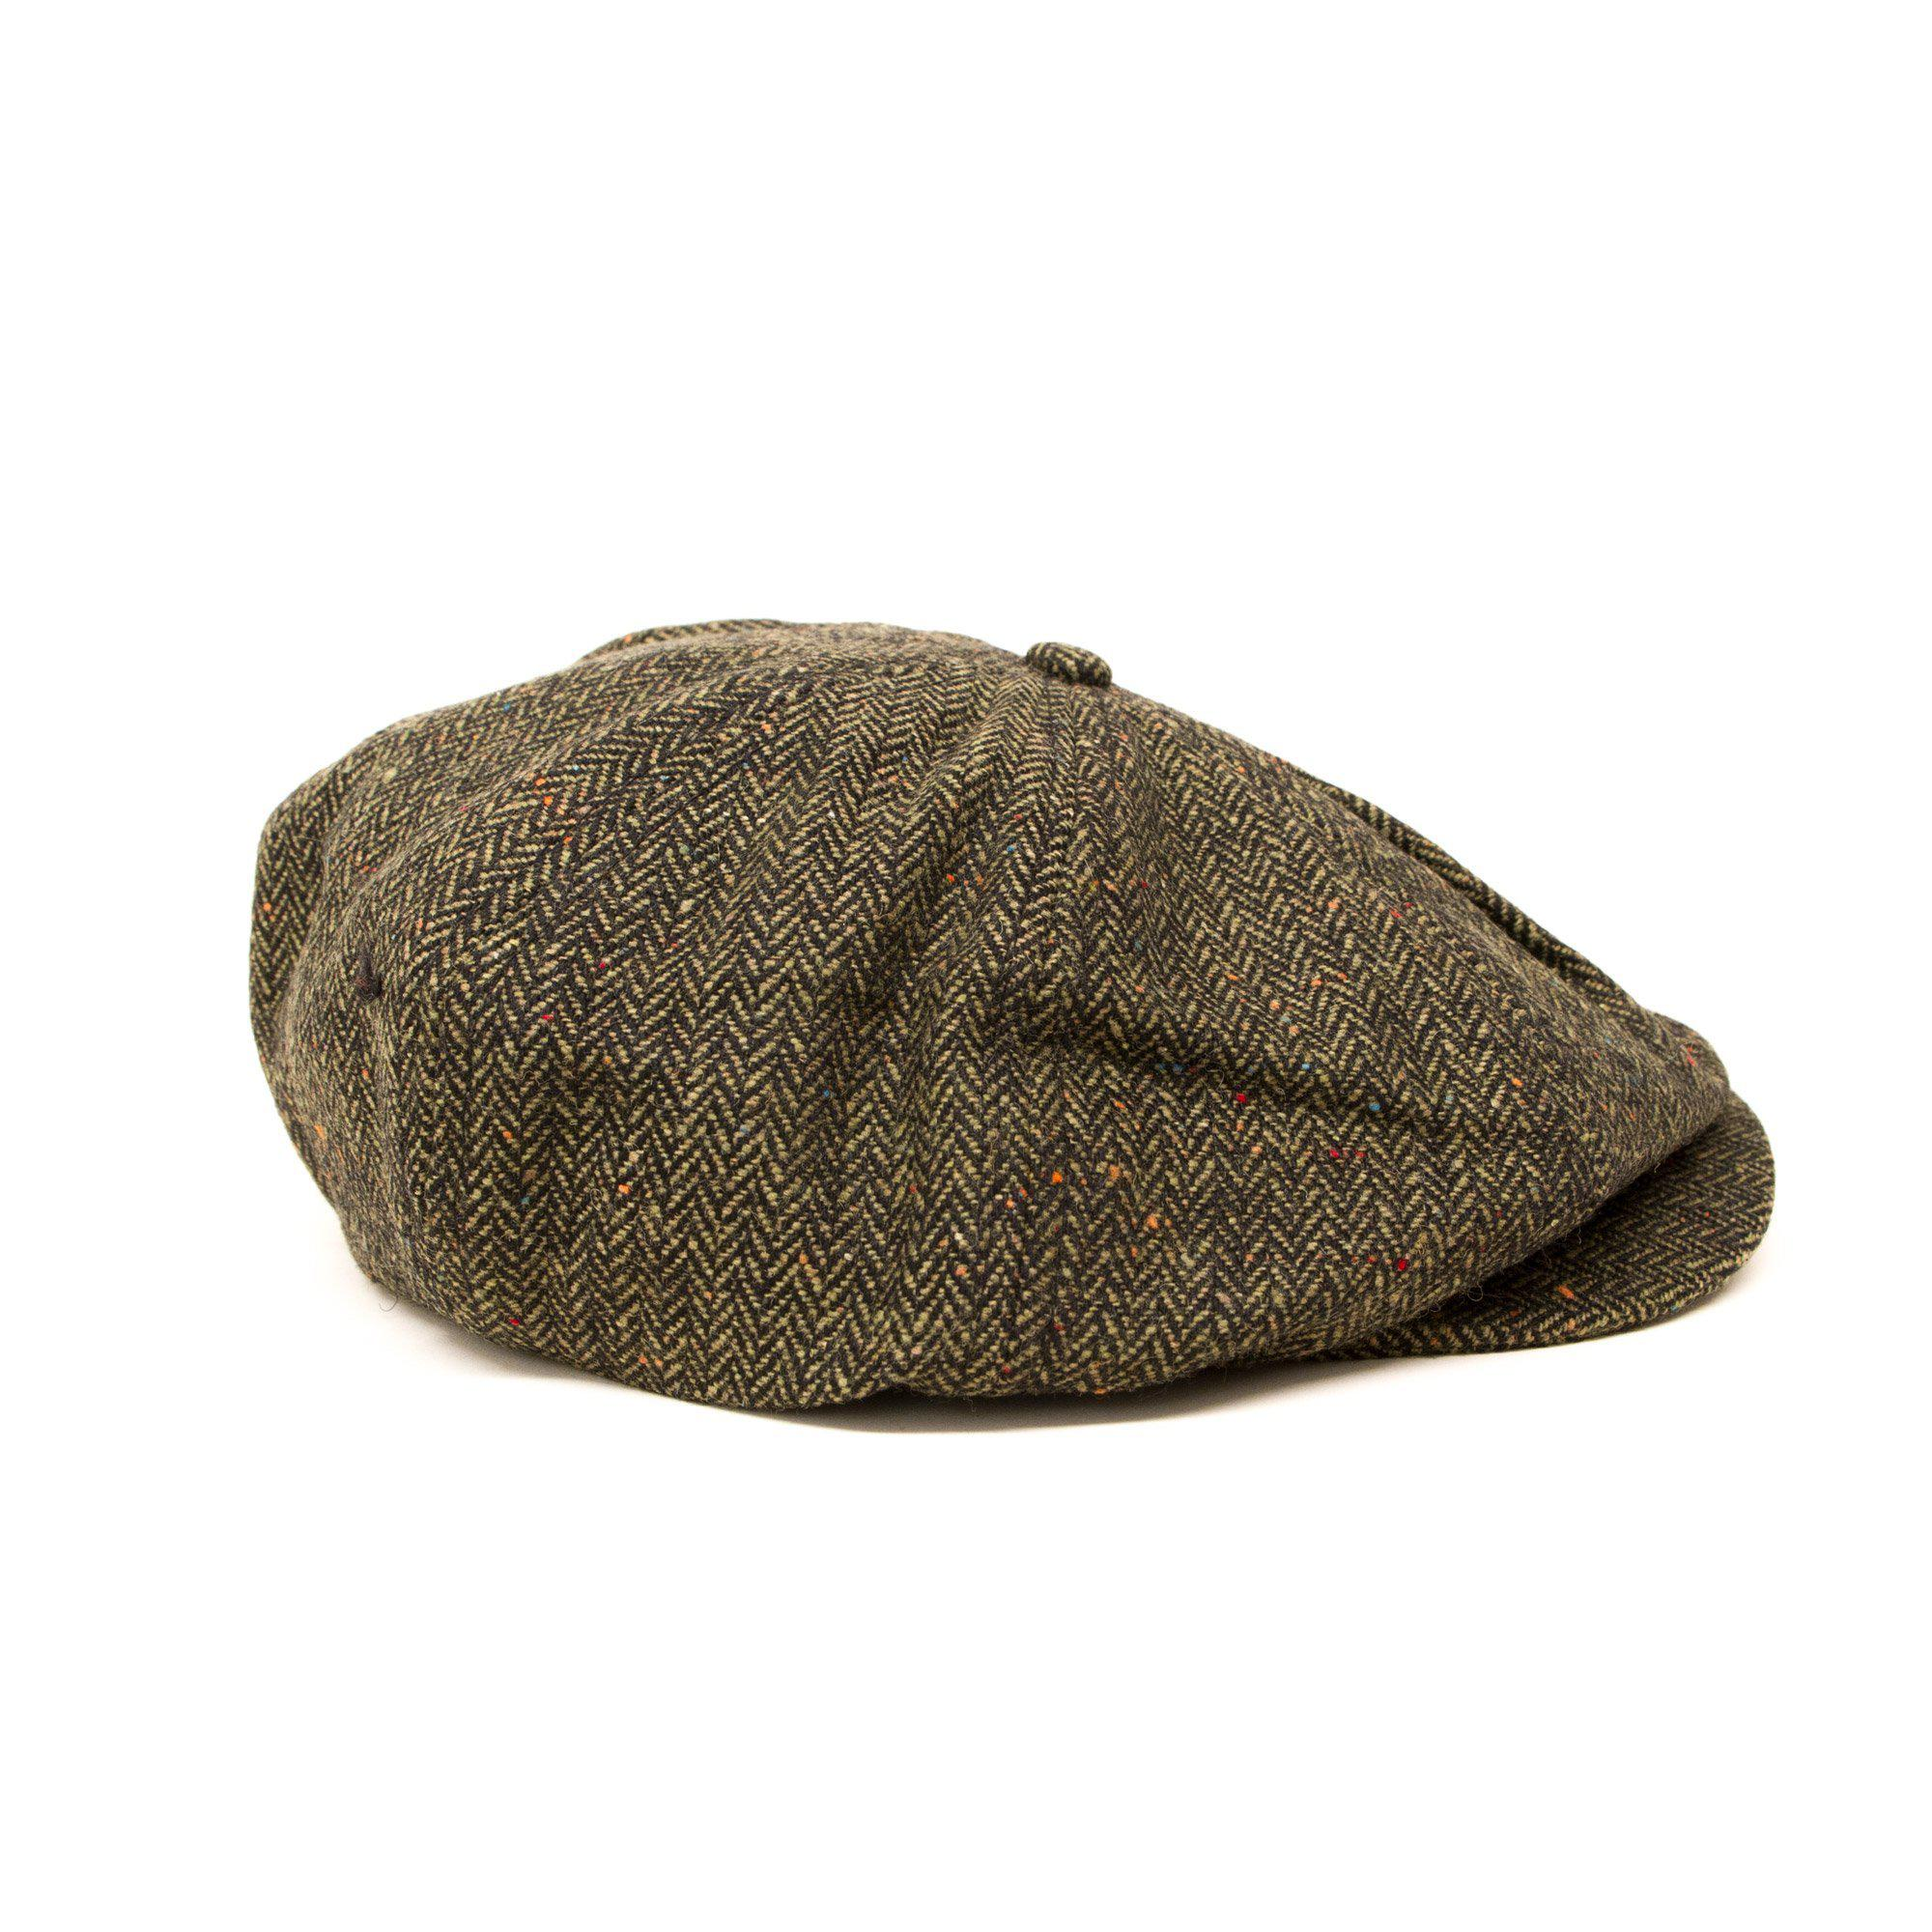 24ba257985e Dickies - Green Tucson Tweed Flat Cap for Men - Lyst. View fullscreen